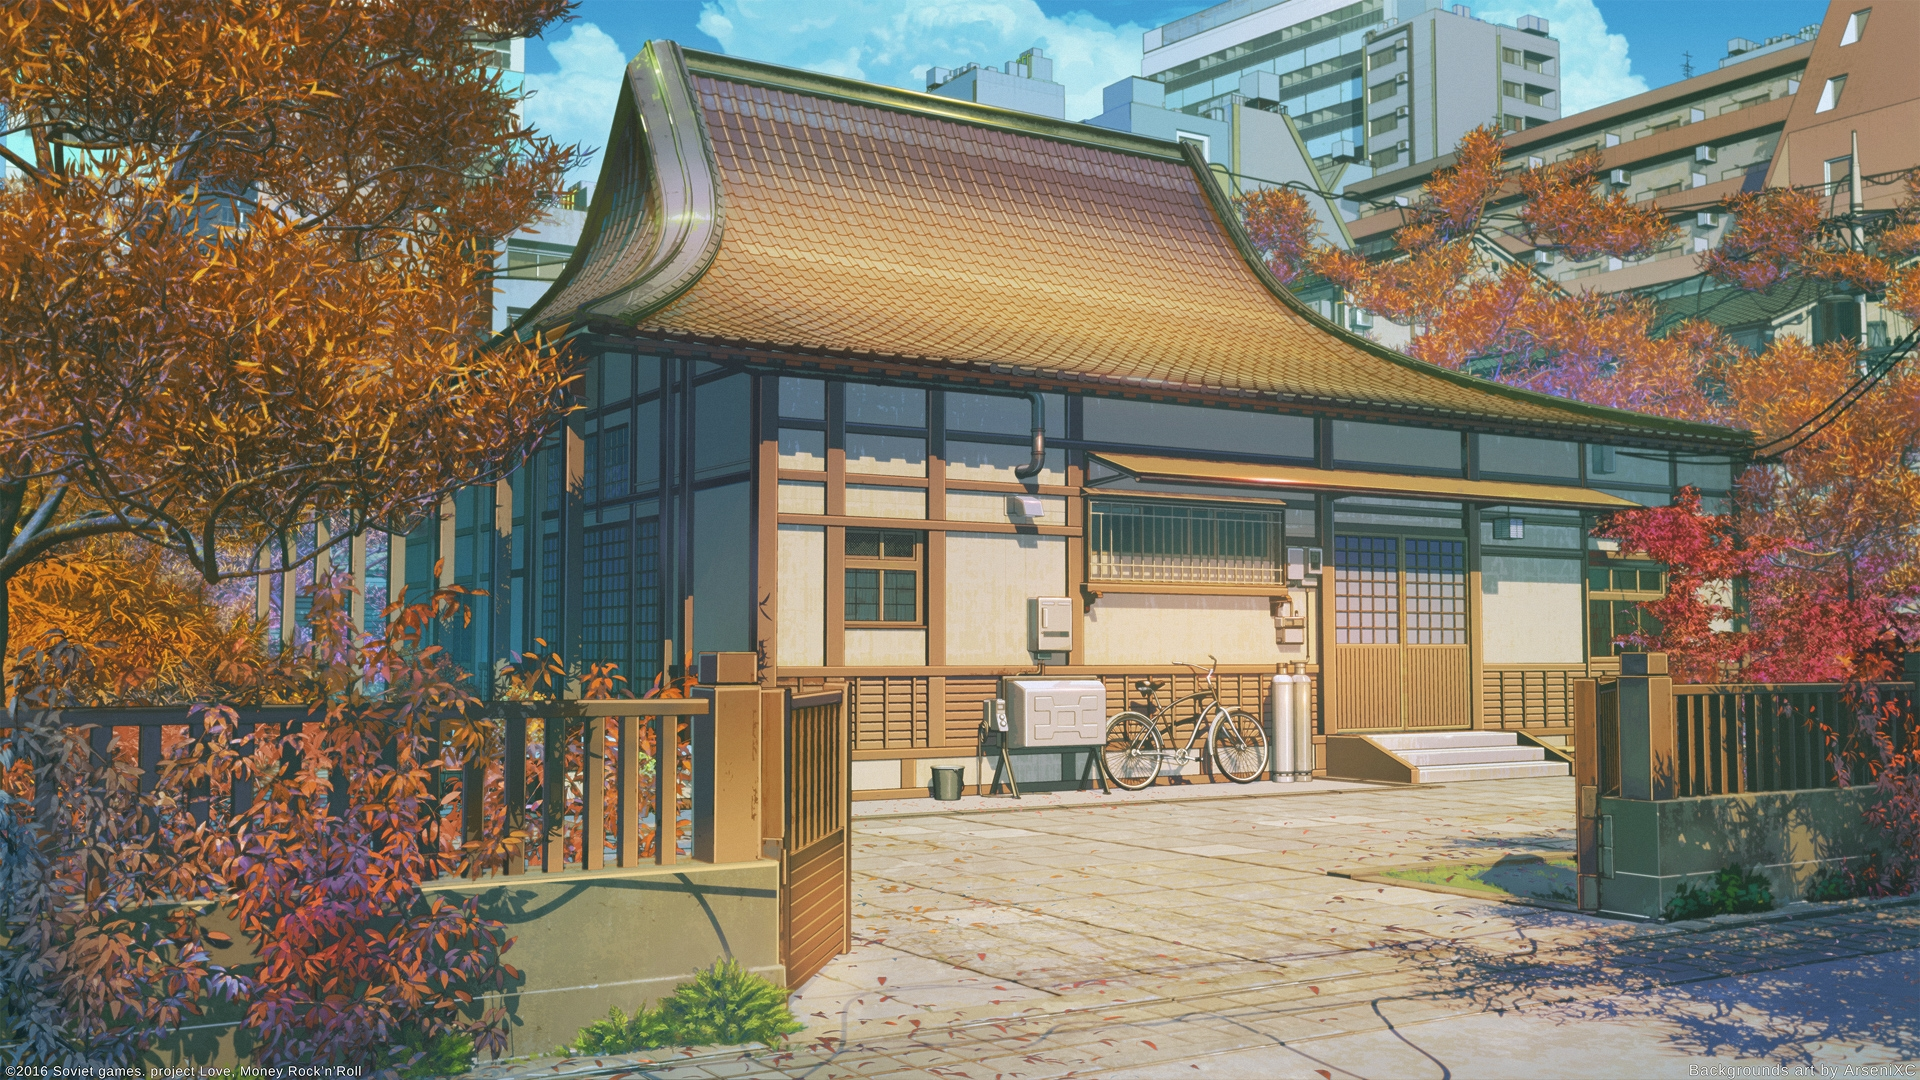 Iphone X Wallpaper Size Perspective Download 1920x1080 Anime Landscape Traditional Building